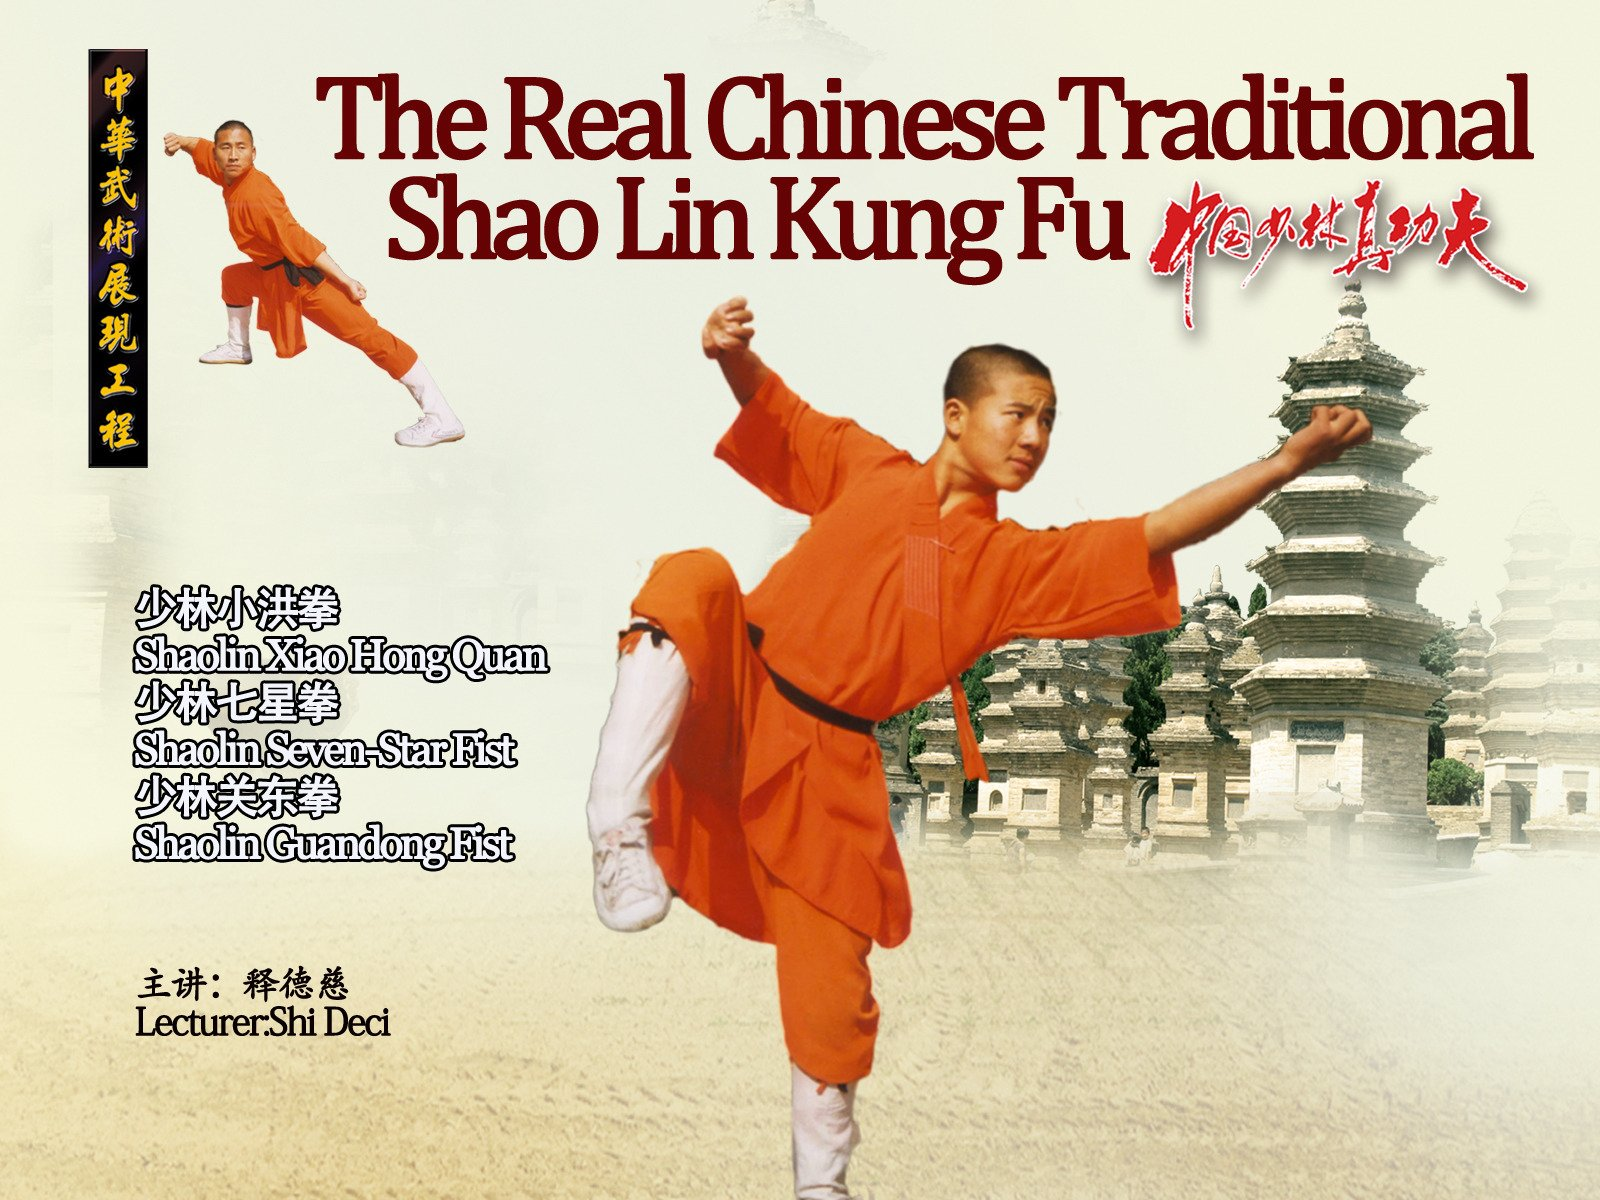 The Real Chinese Traditional Shao Lin Kung Fu - Season 1